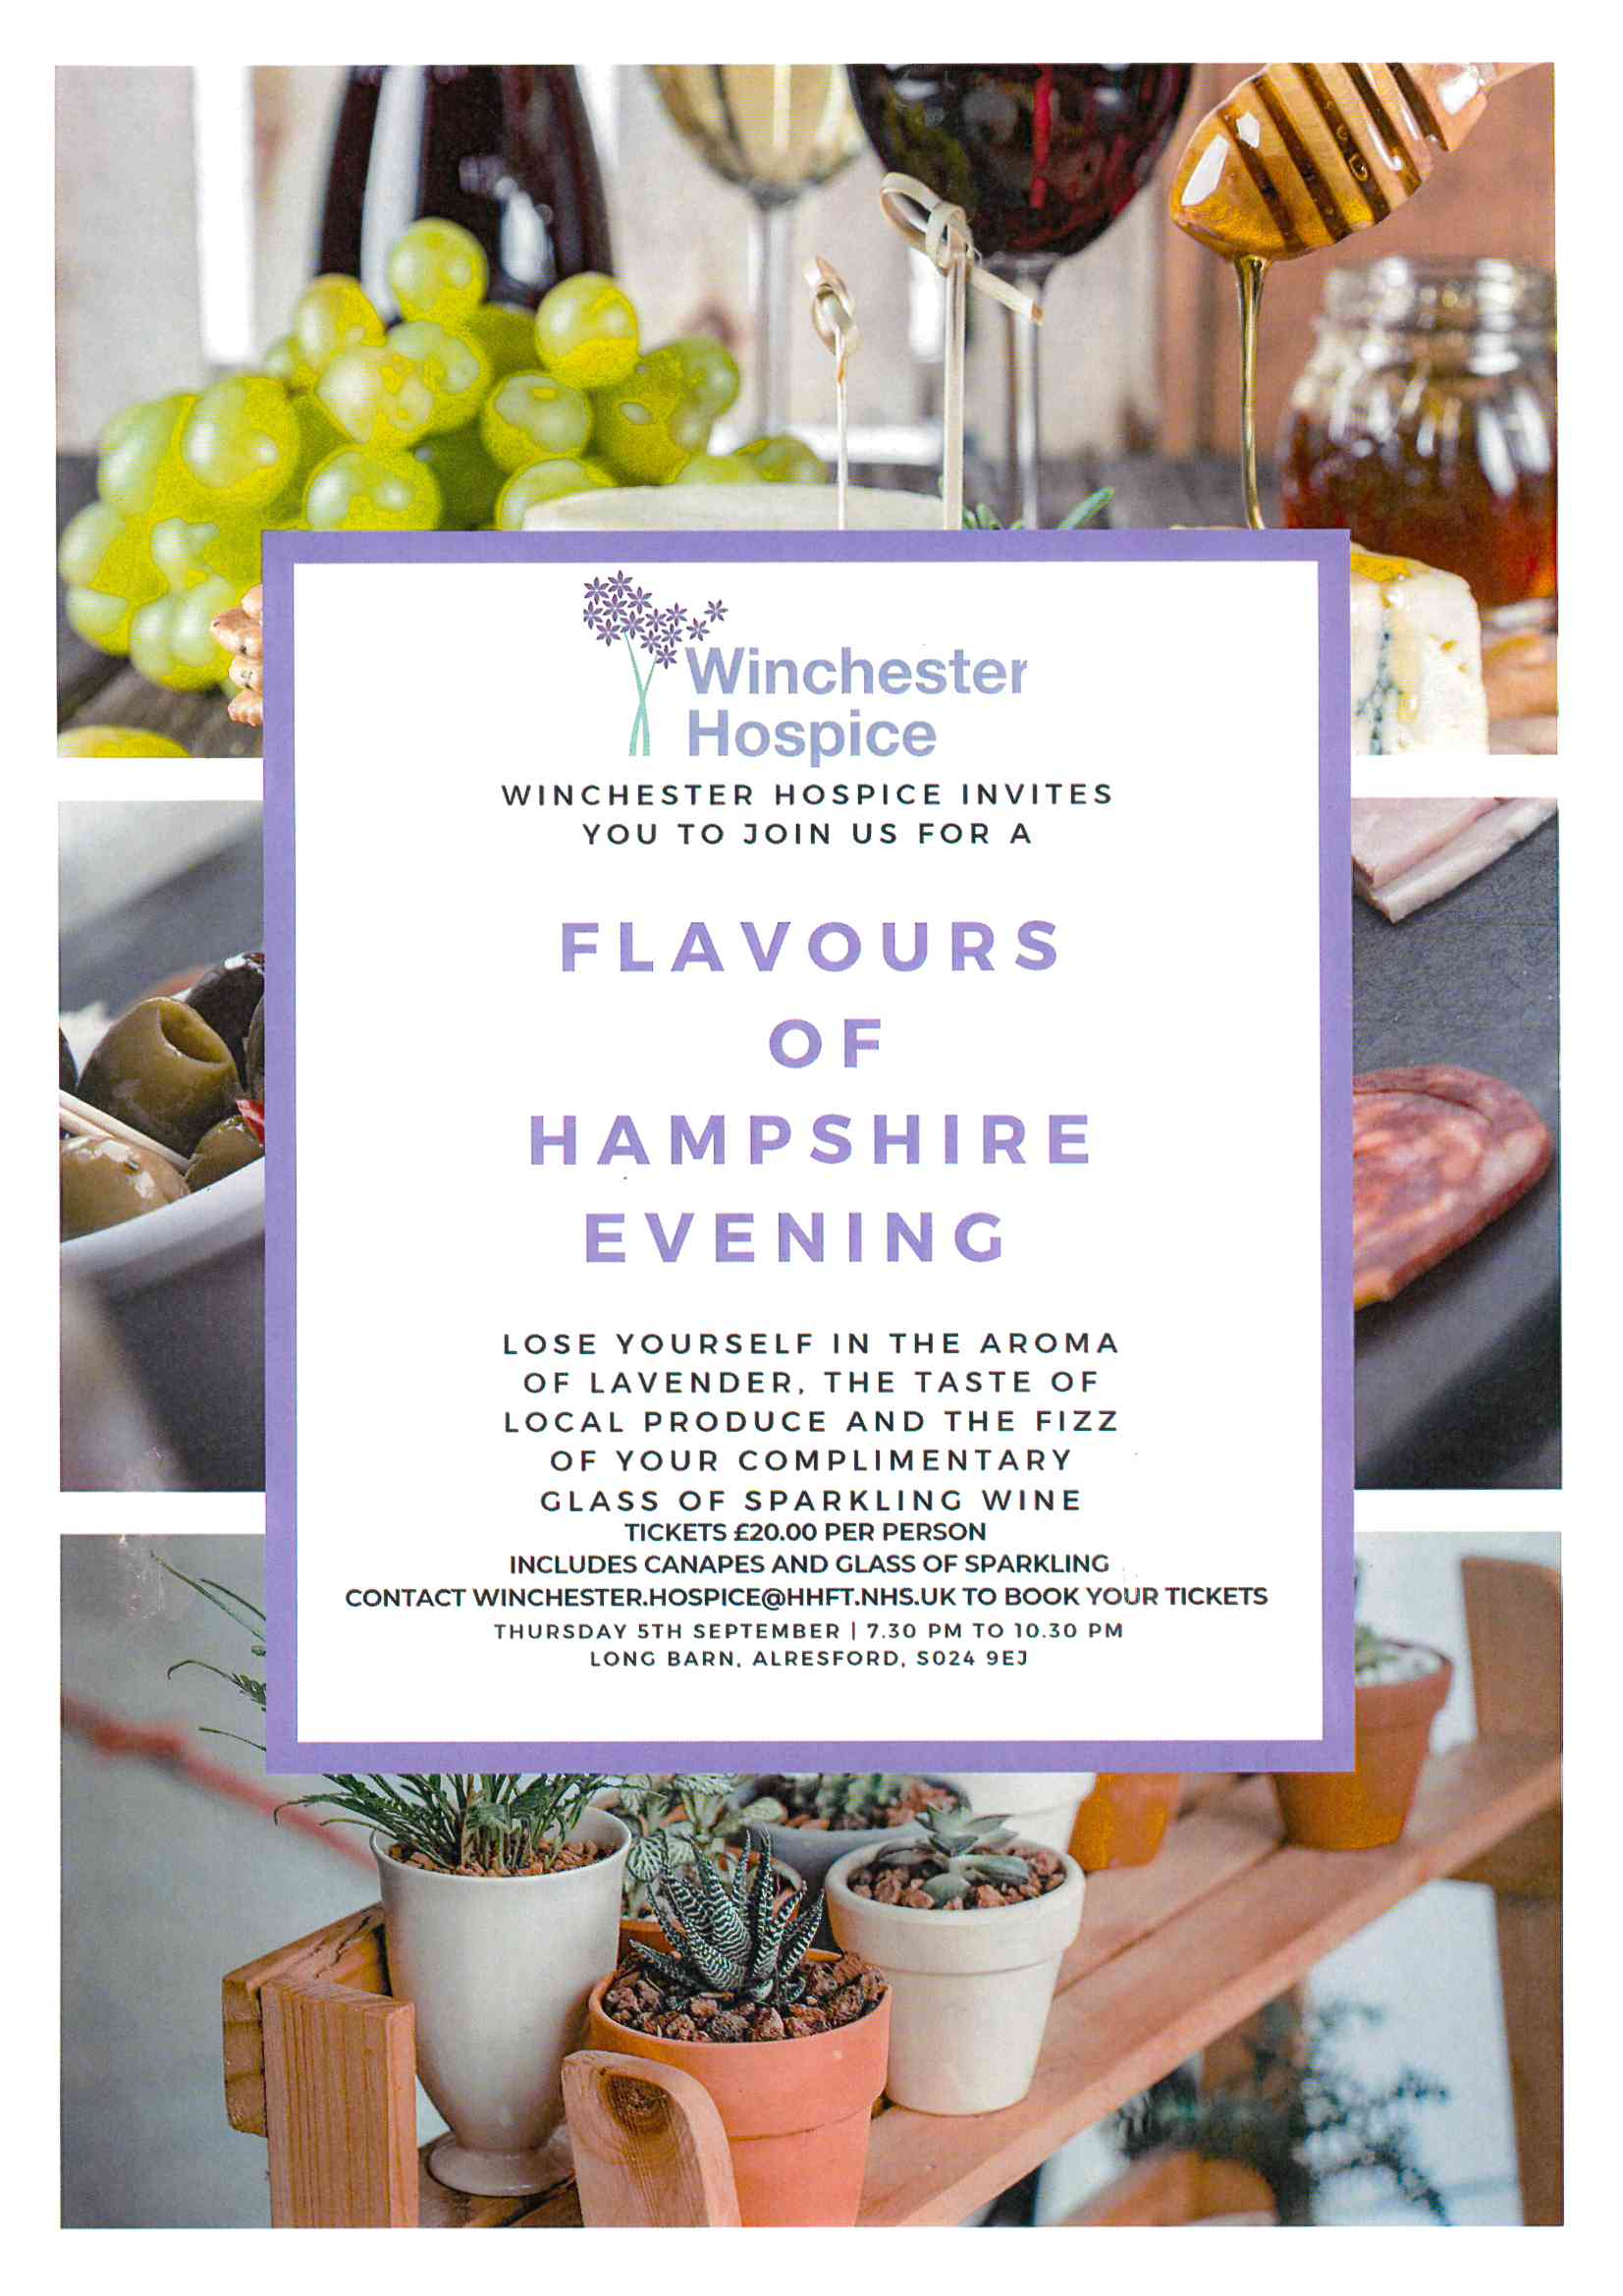 Flavours of Hampshire an evening of tasting the delights this County has to offer. Thursday 5 September.